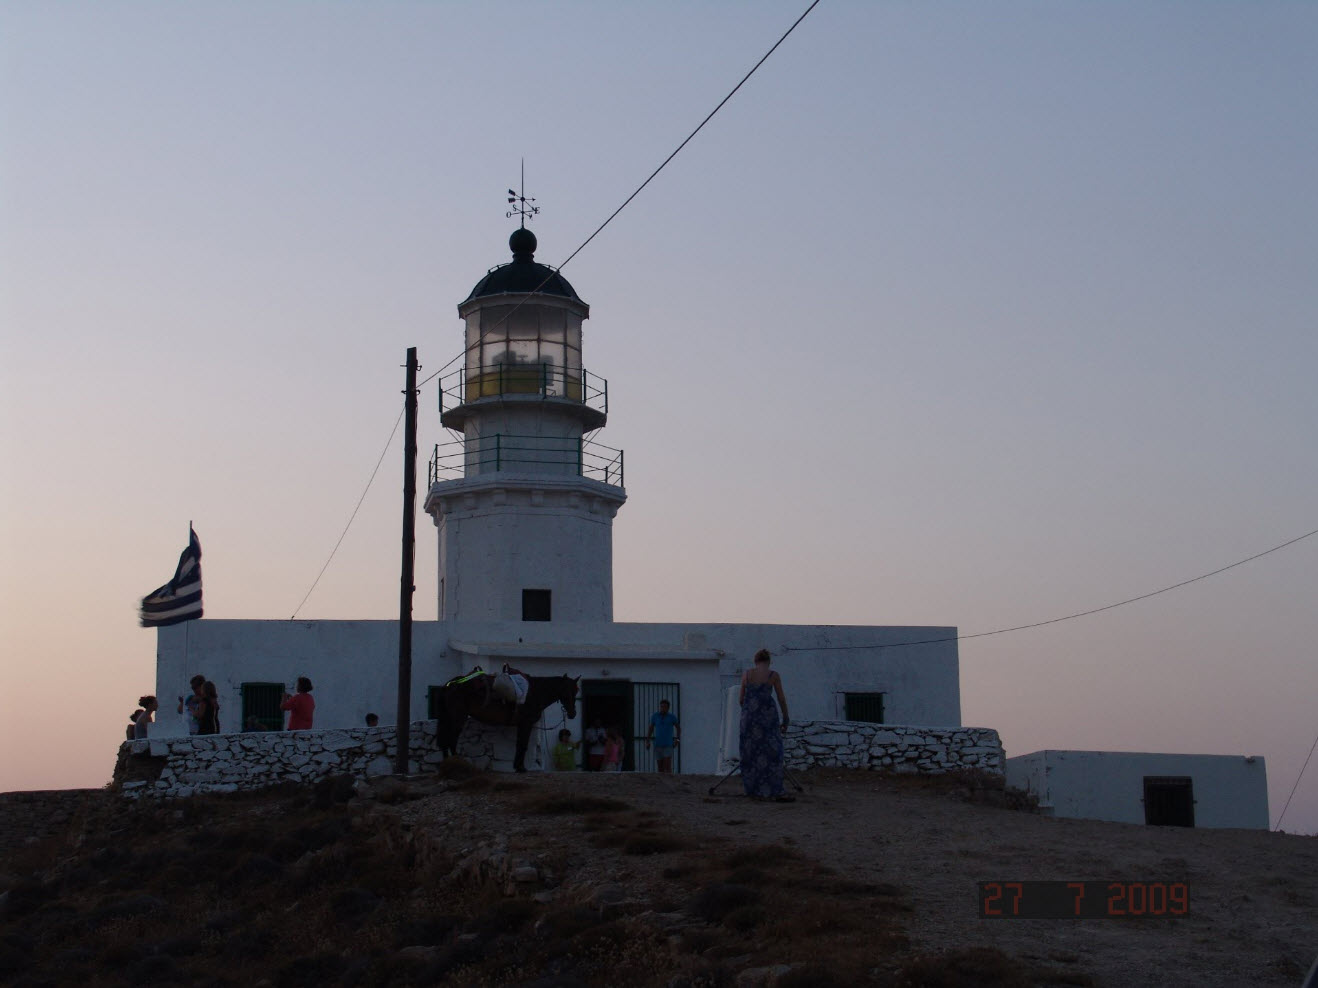 Armenistis: The lighthouse that illuminates the hearts of Mykonians